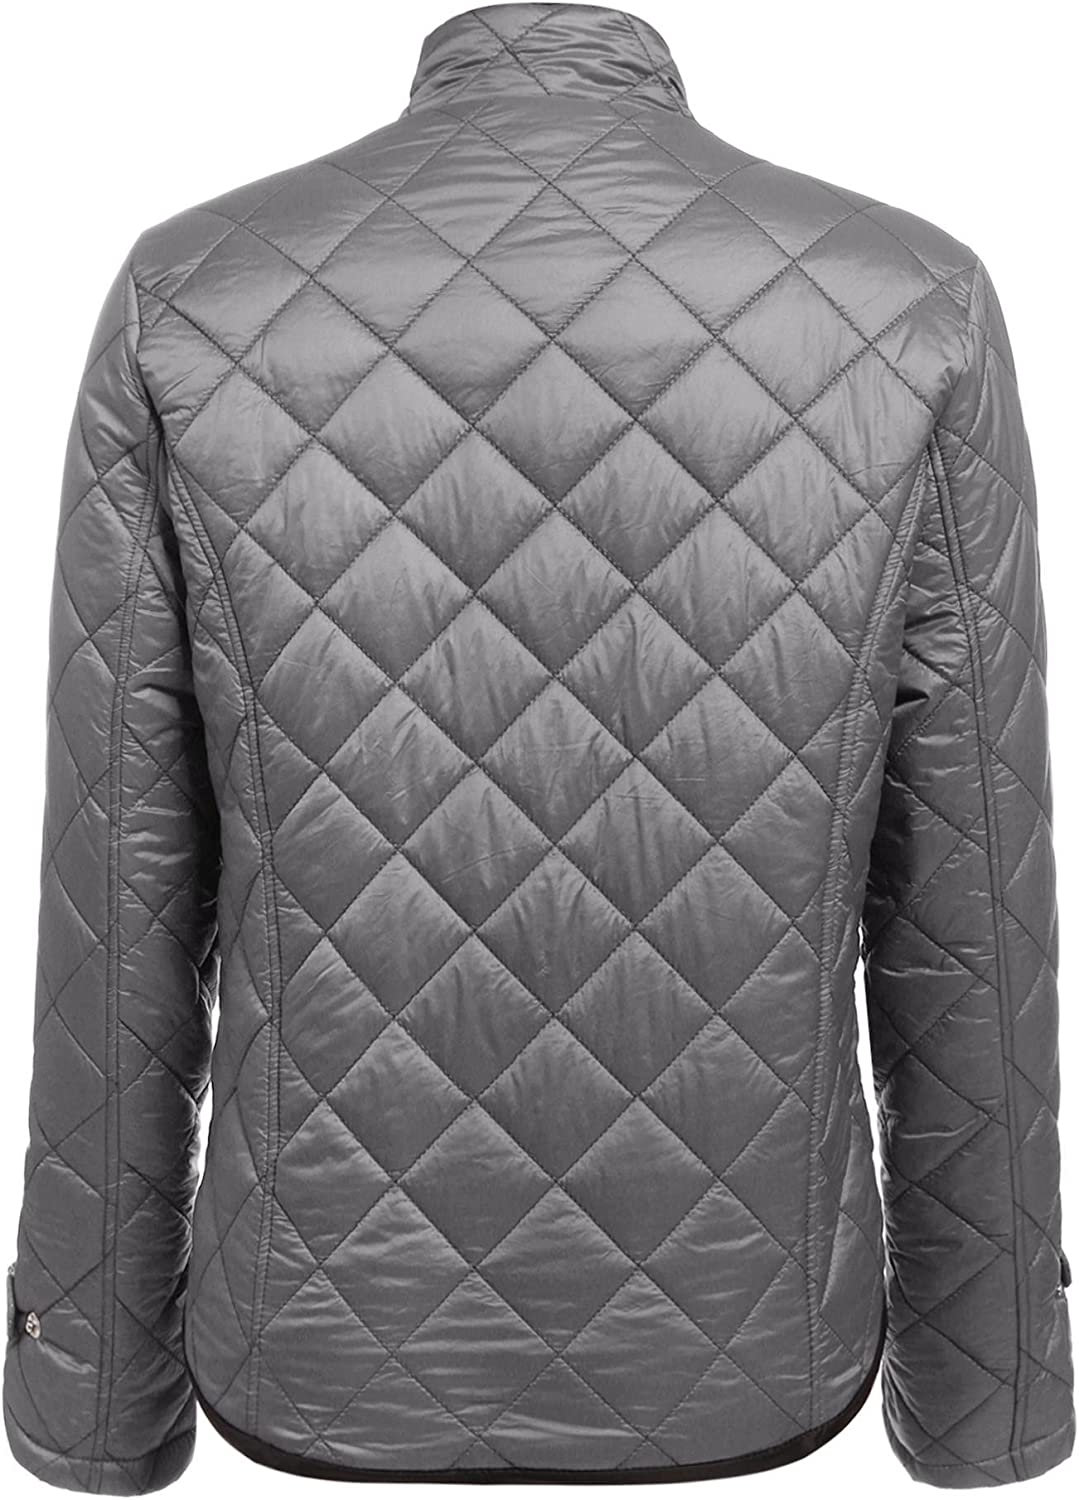 Zeagoo Womens Winter Hooded Anorak Safari Jacket Quilted Lined Trench Coats